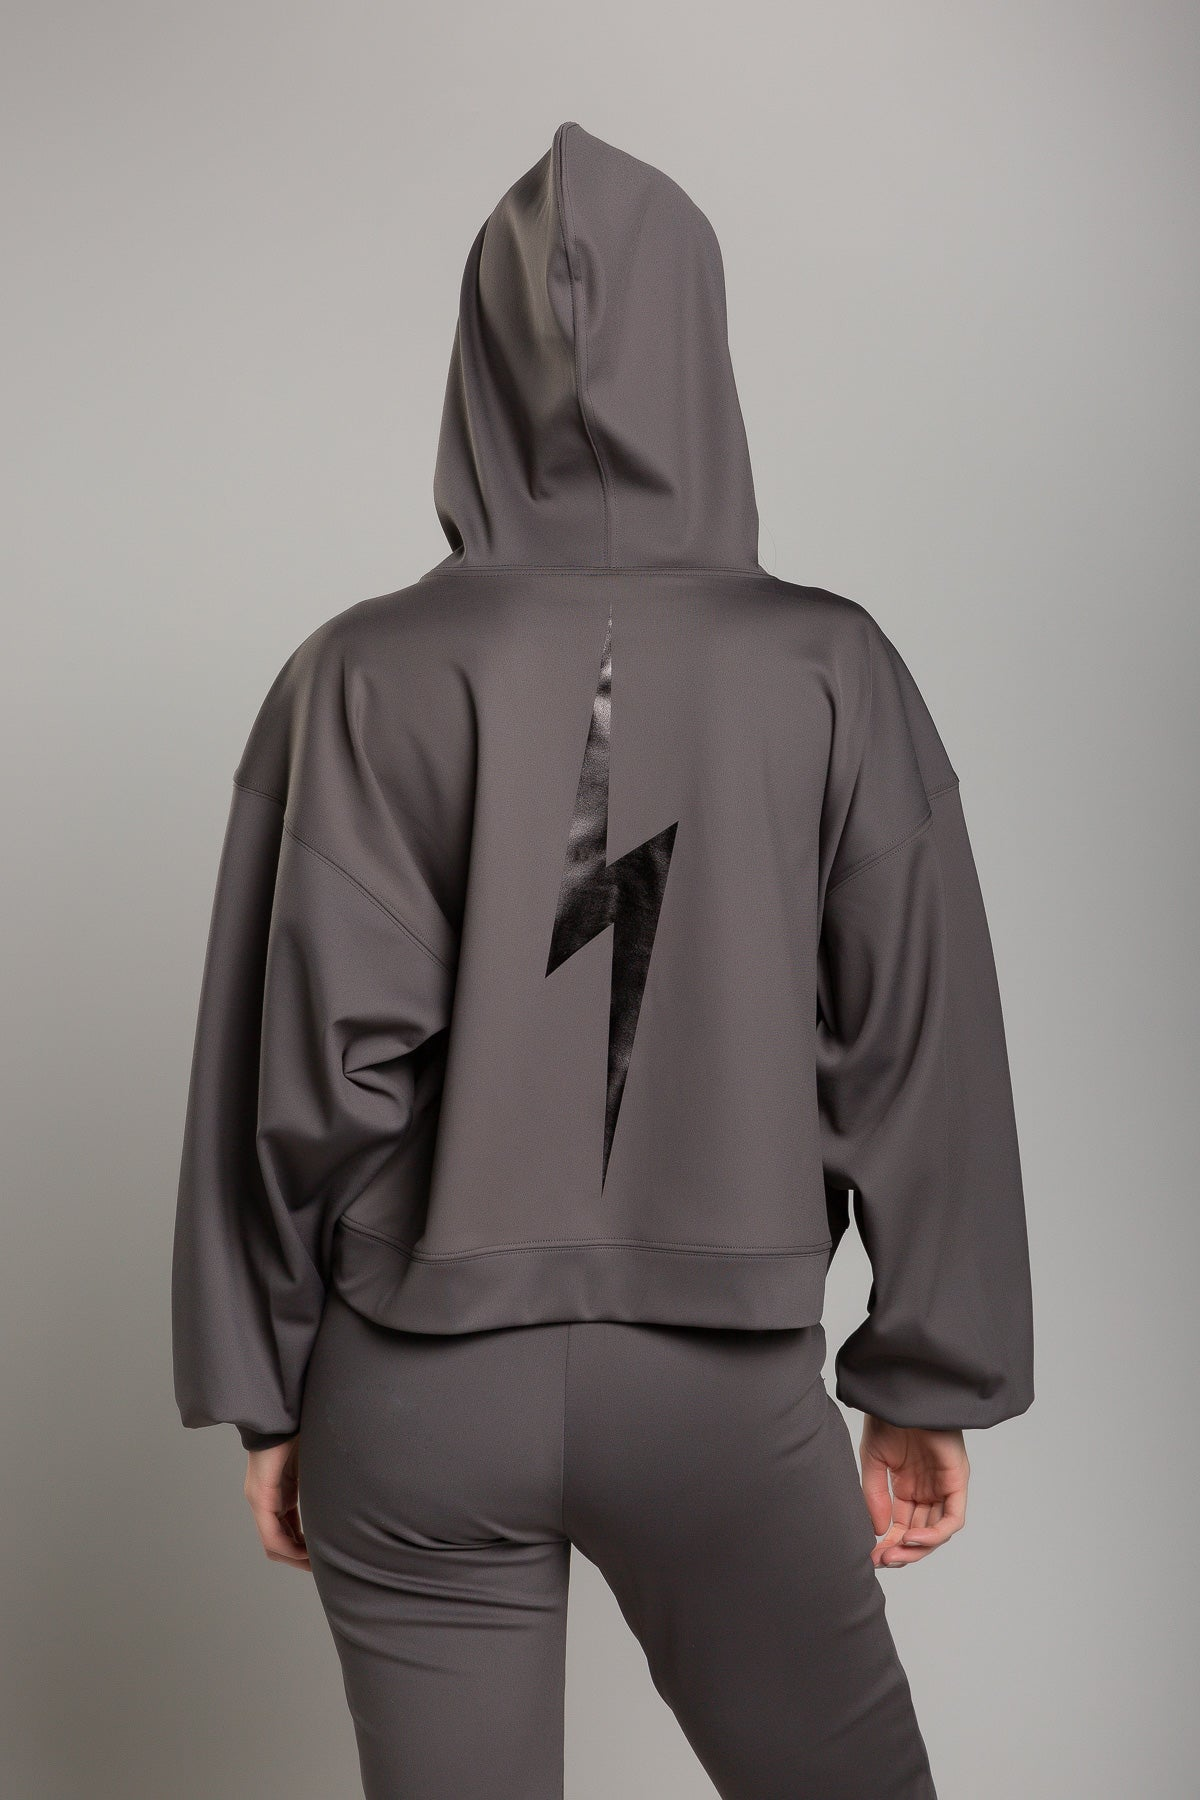 The Gray Thunder Hoodie